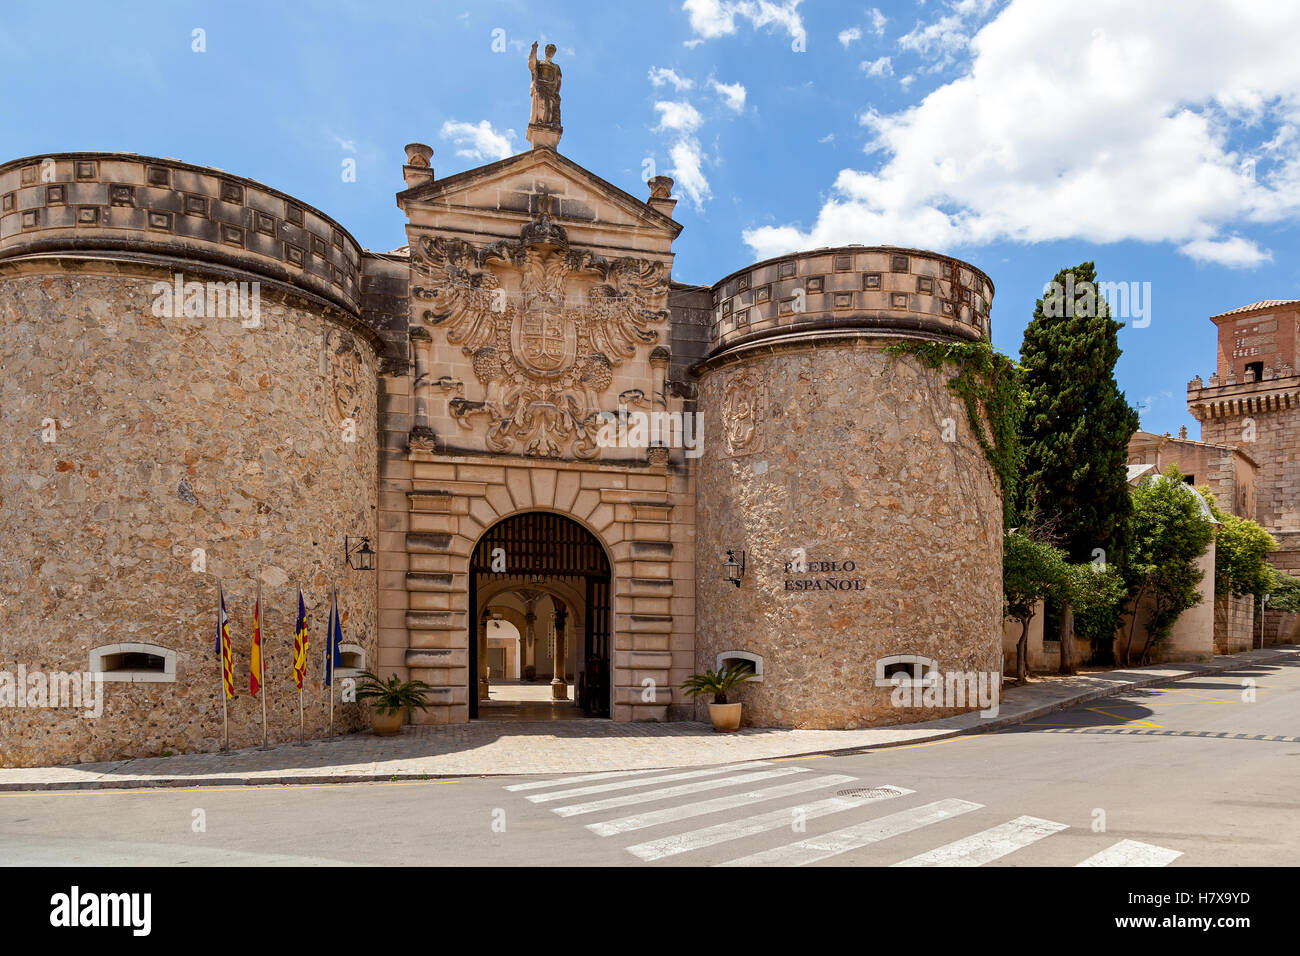 Pable Espanol  Spanish village an open-air museum in Palma de Mallorca. It located in the district of Son Espanolet. - Stock Image